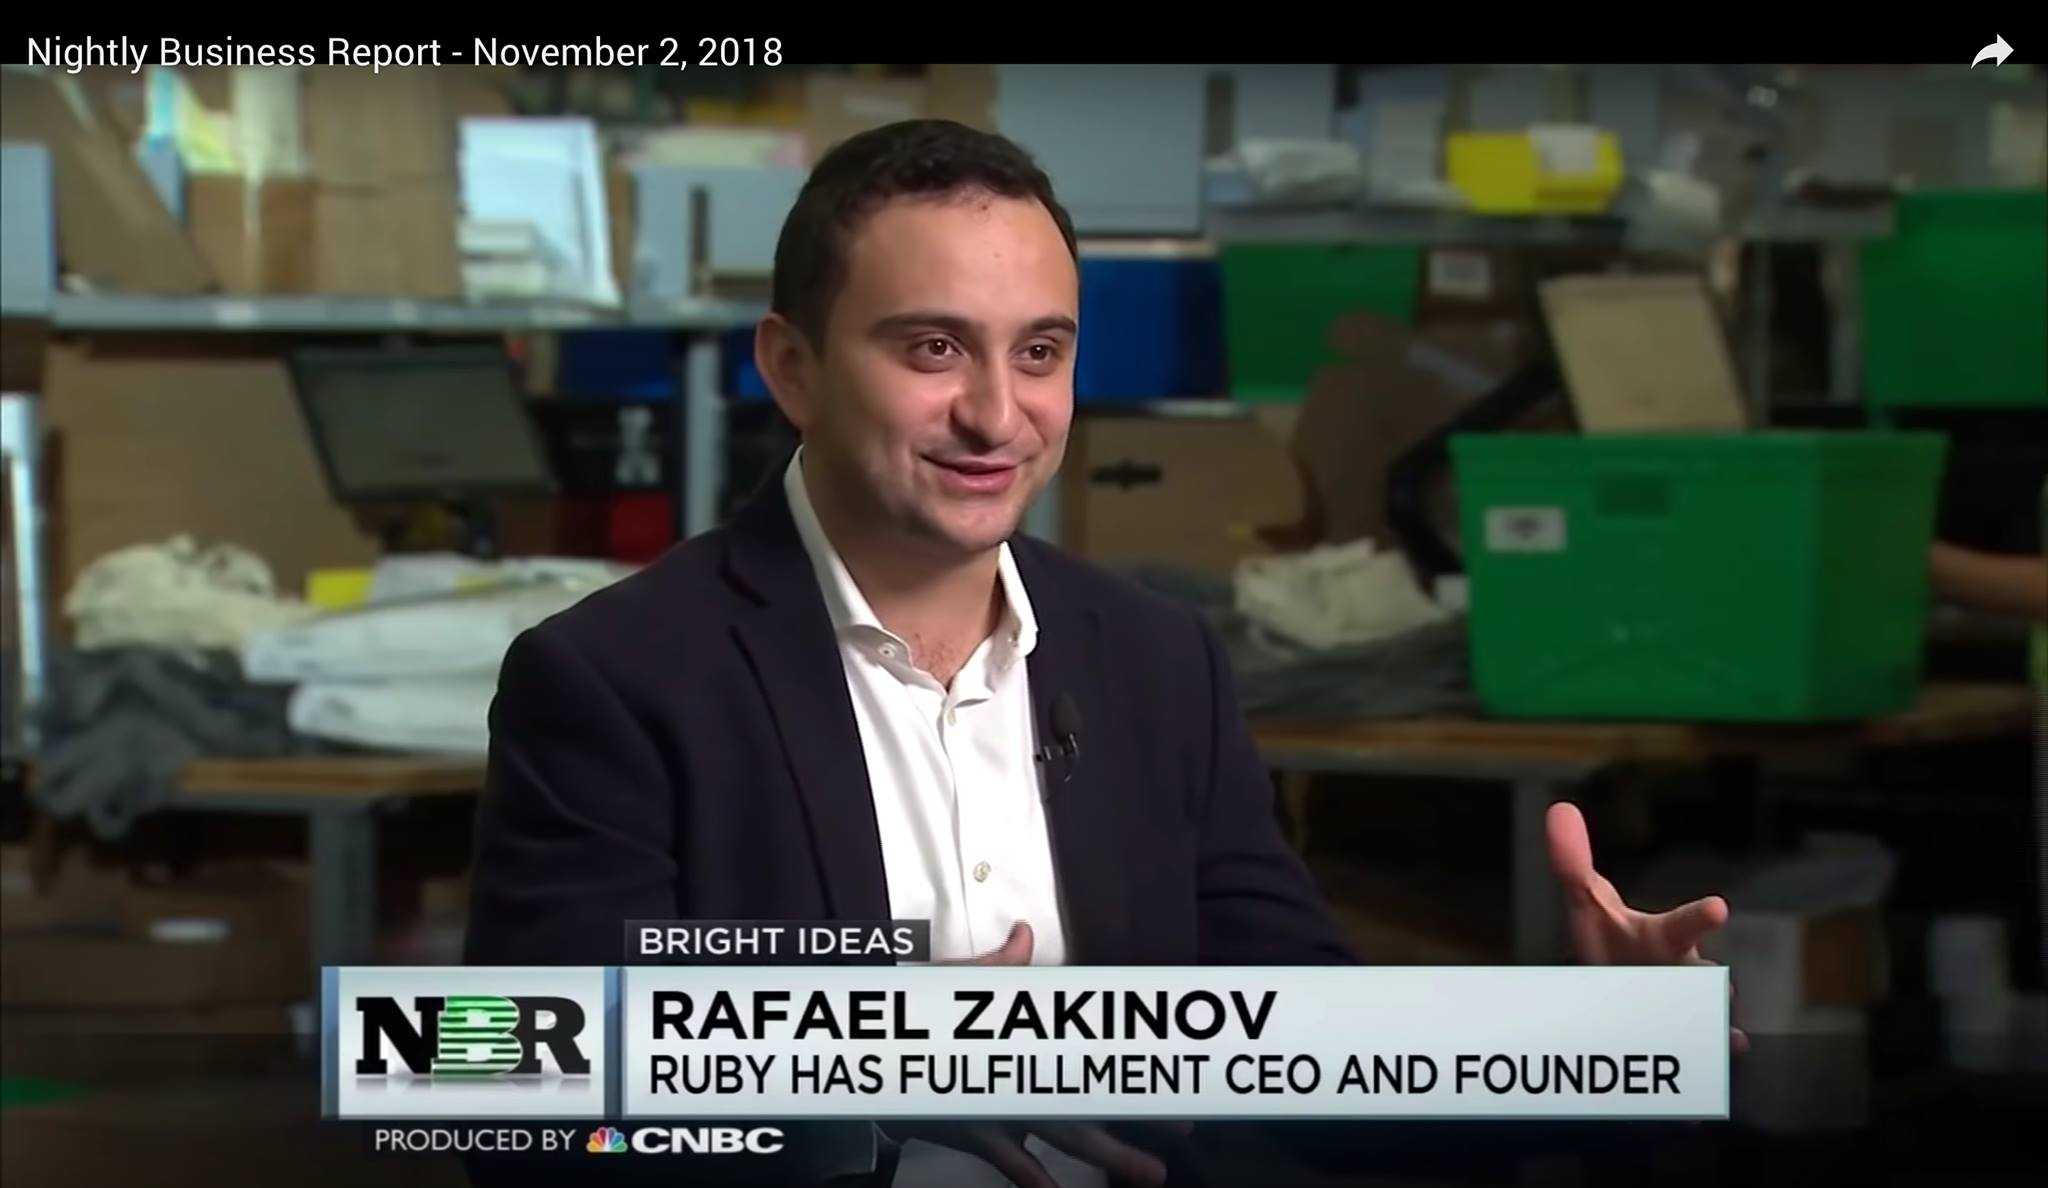 Rafael Zakinov CNBC Nightly Business Report 1